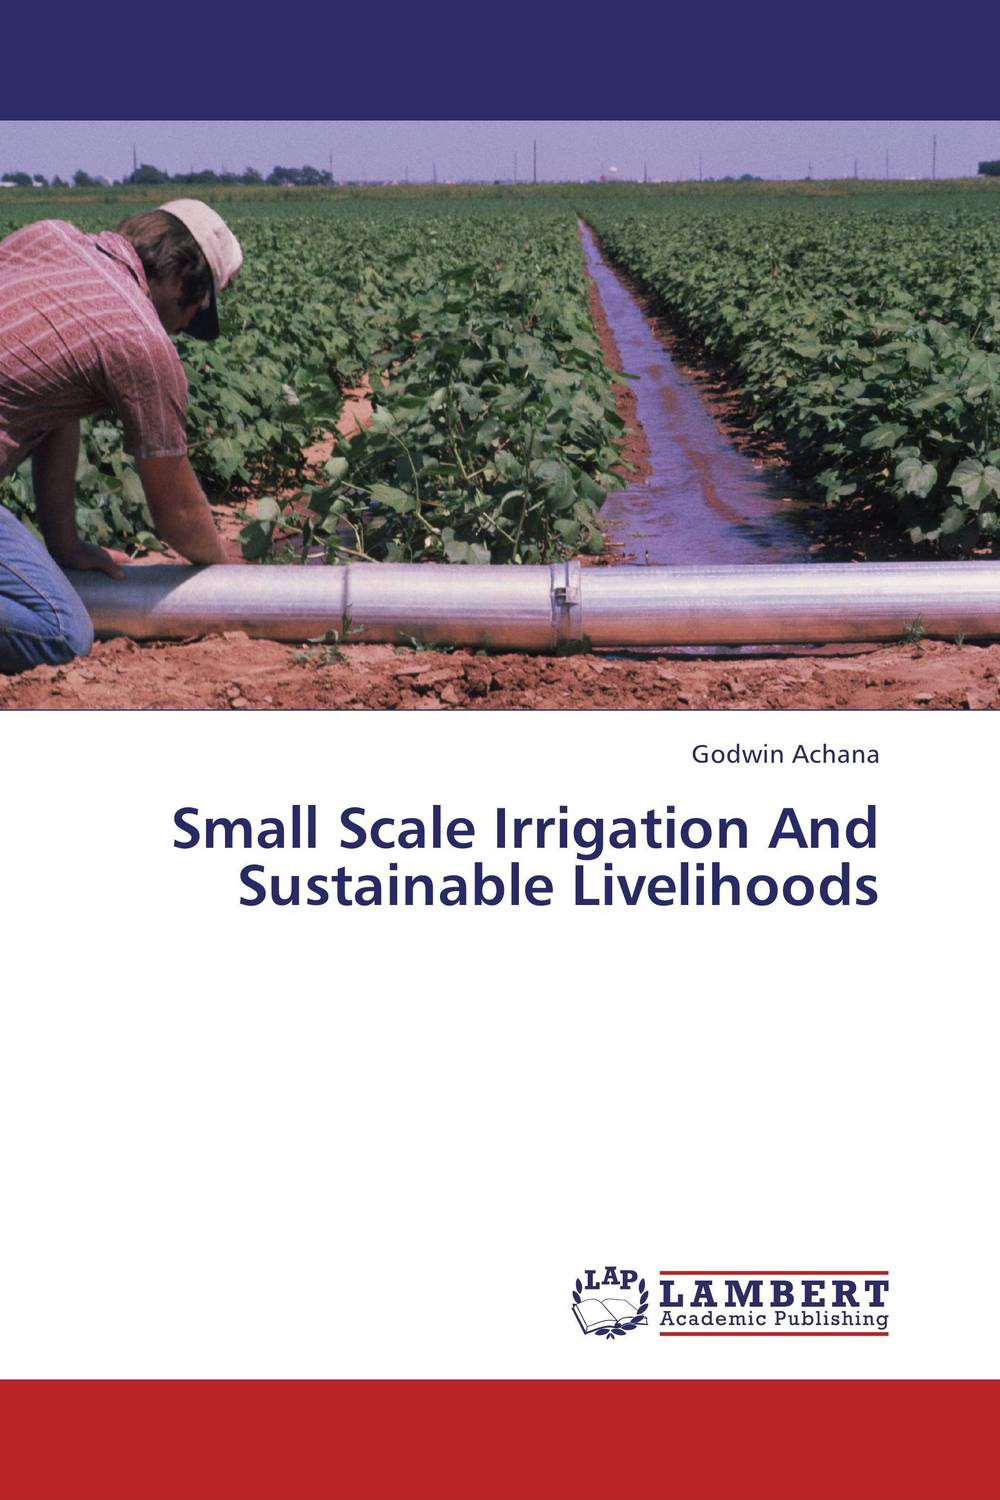 Small Scale Irrigation And Sustainable Livelihoods joseph addo ampofo humphrey agbeko and wilhermina tetteh small scale diamond operations in selected communities in ghana